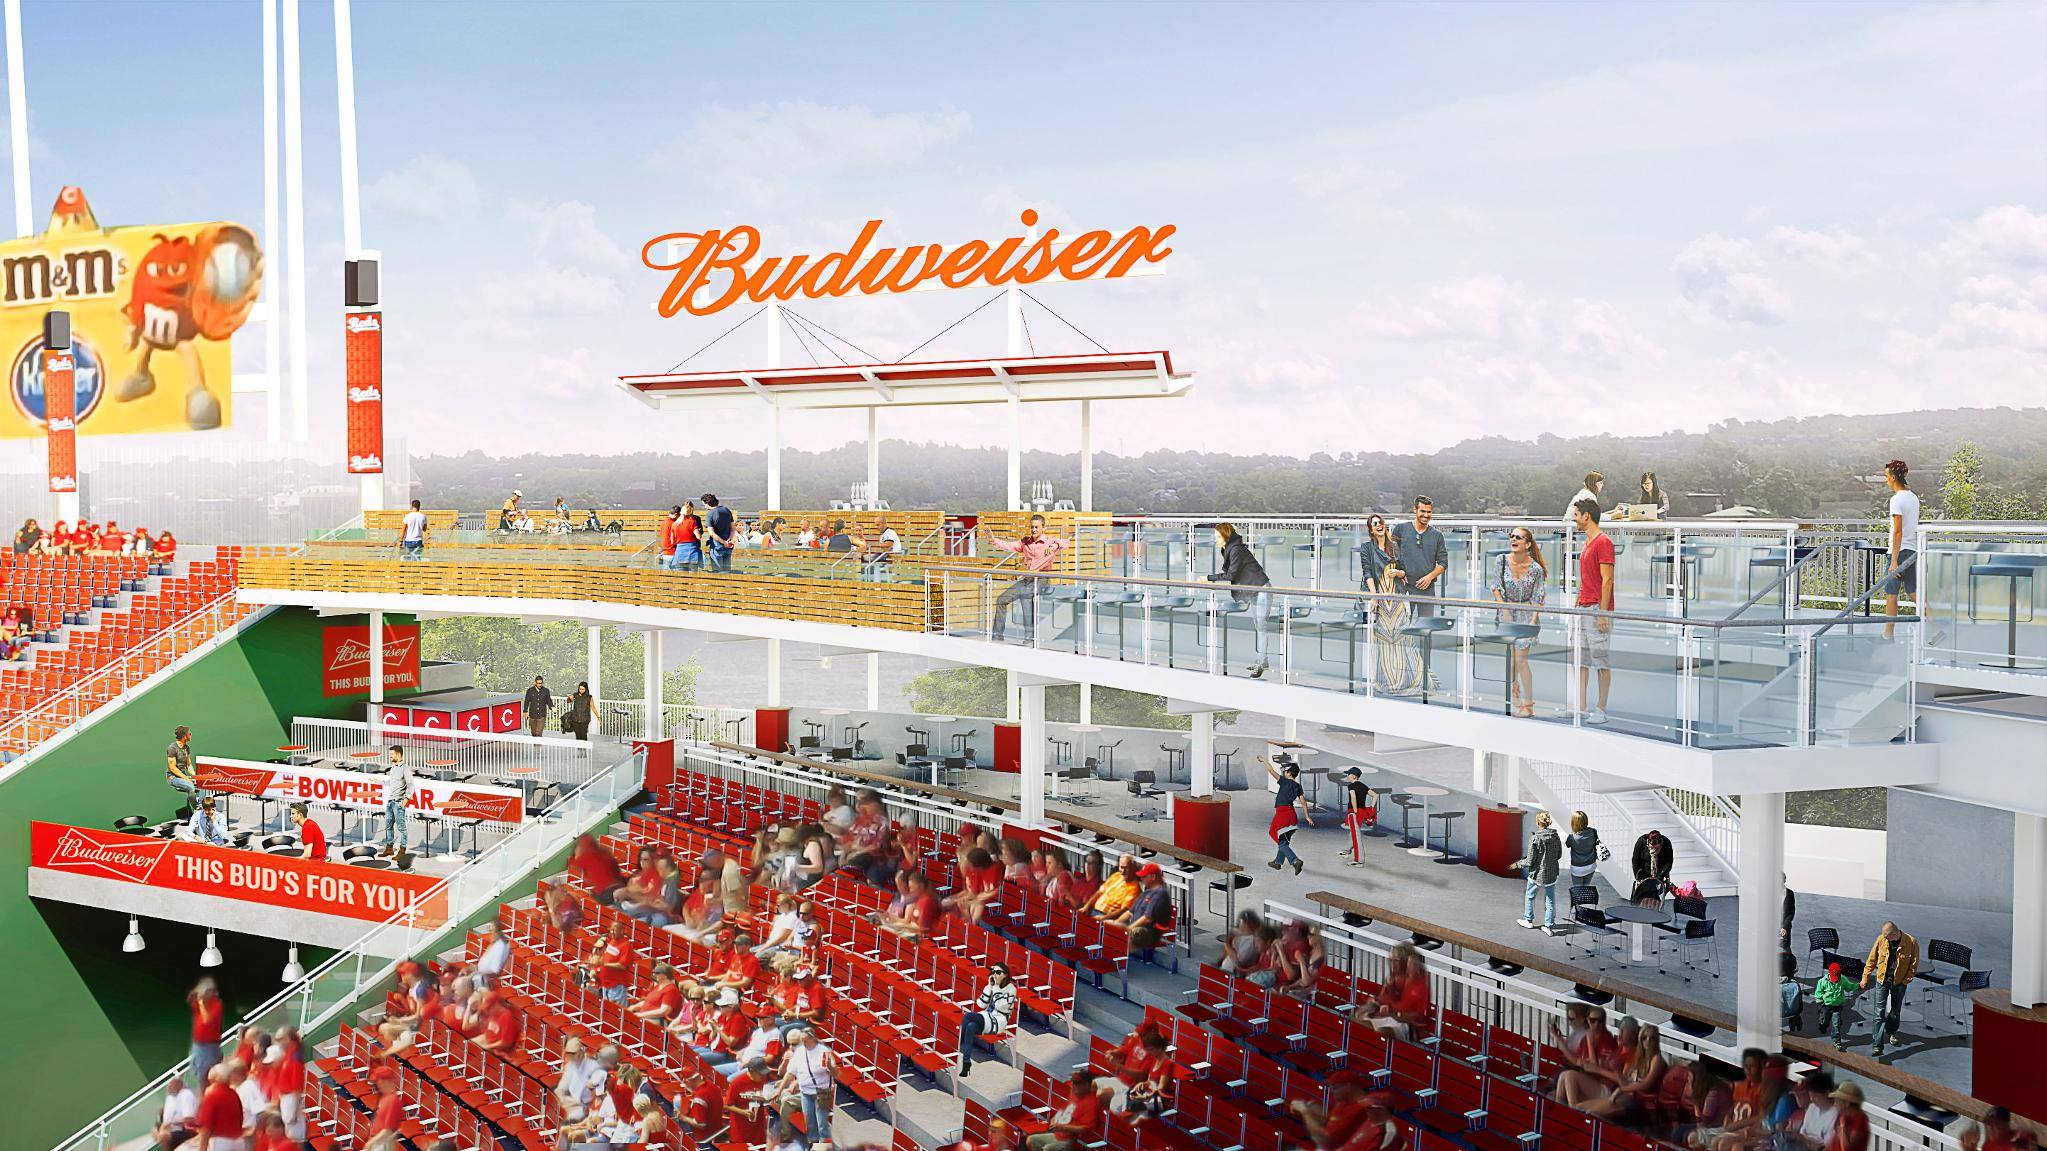 Budweiser Bowtie Bar Great American Ballpark